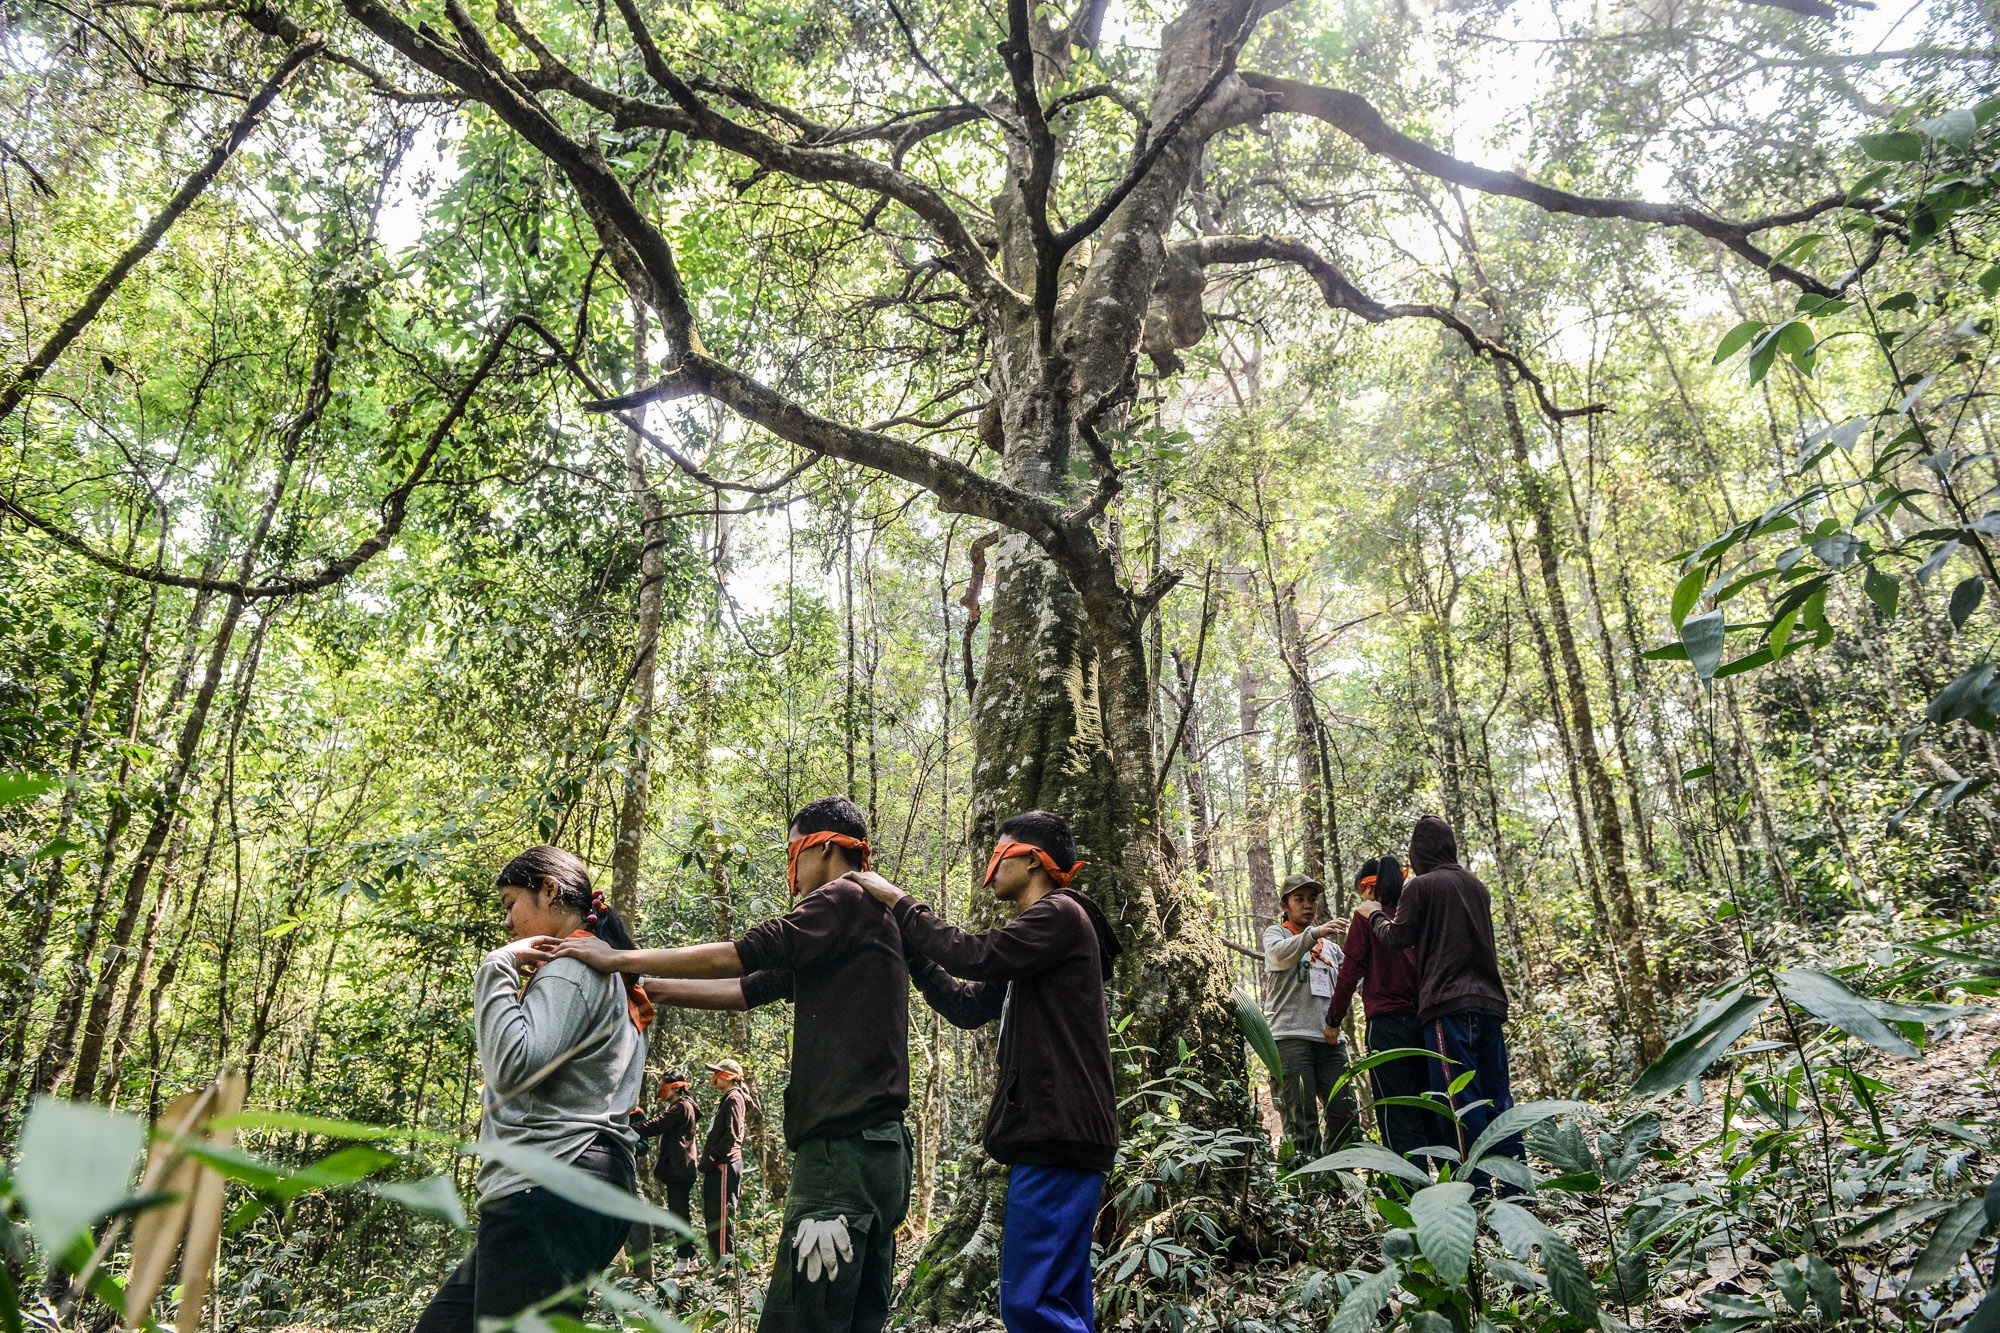 Young people use sensory activities to awaken their own sense of connection with nature. They have been implanted with the sustainable values of environmental savings by a group of environmental activists. Chiang Mai, Thailand.